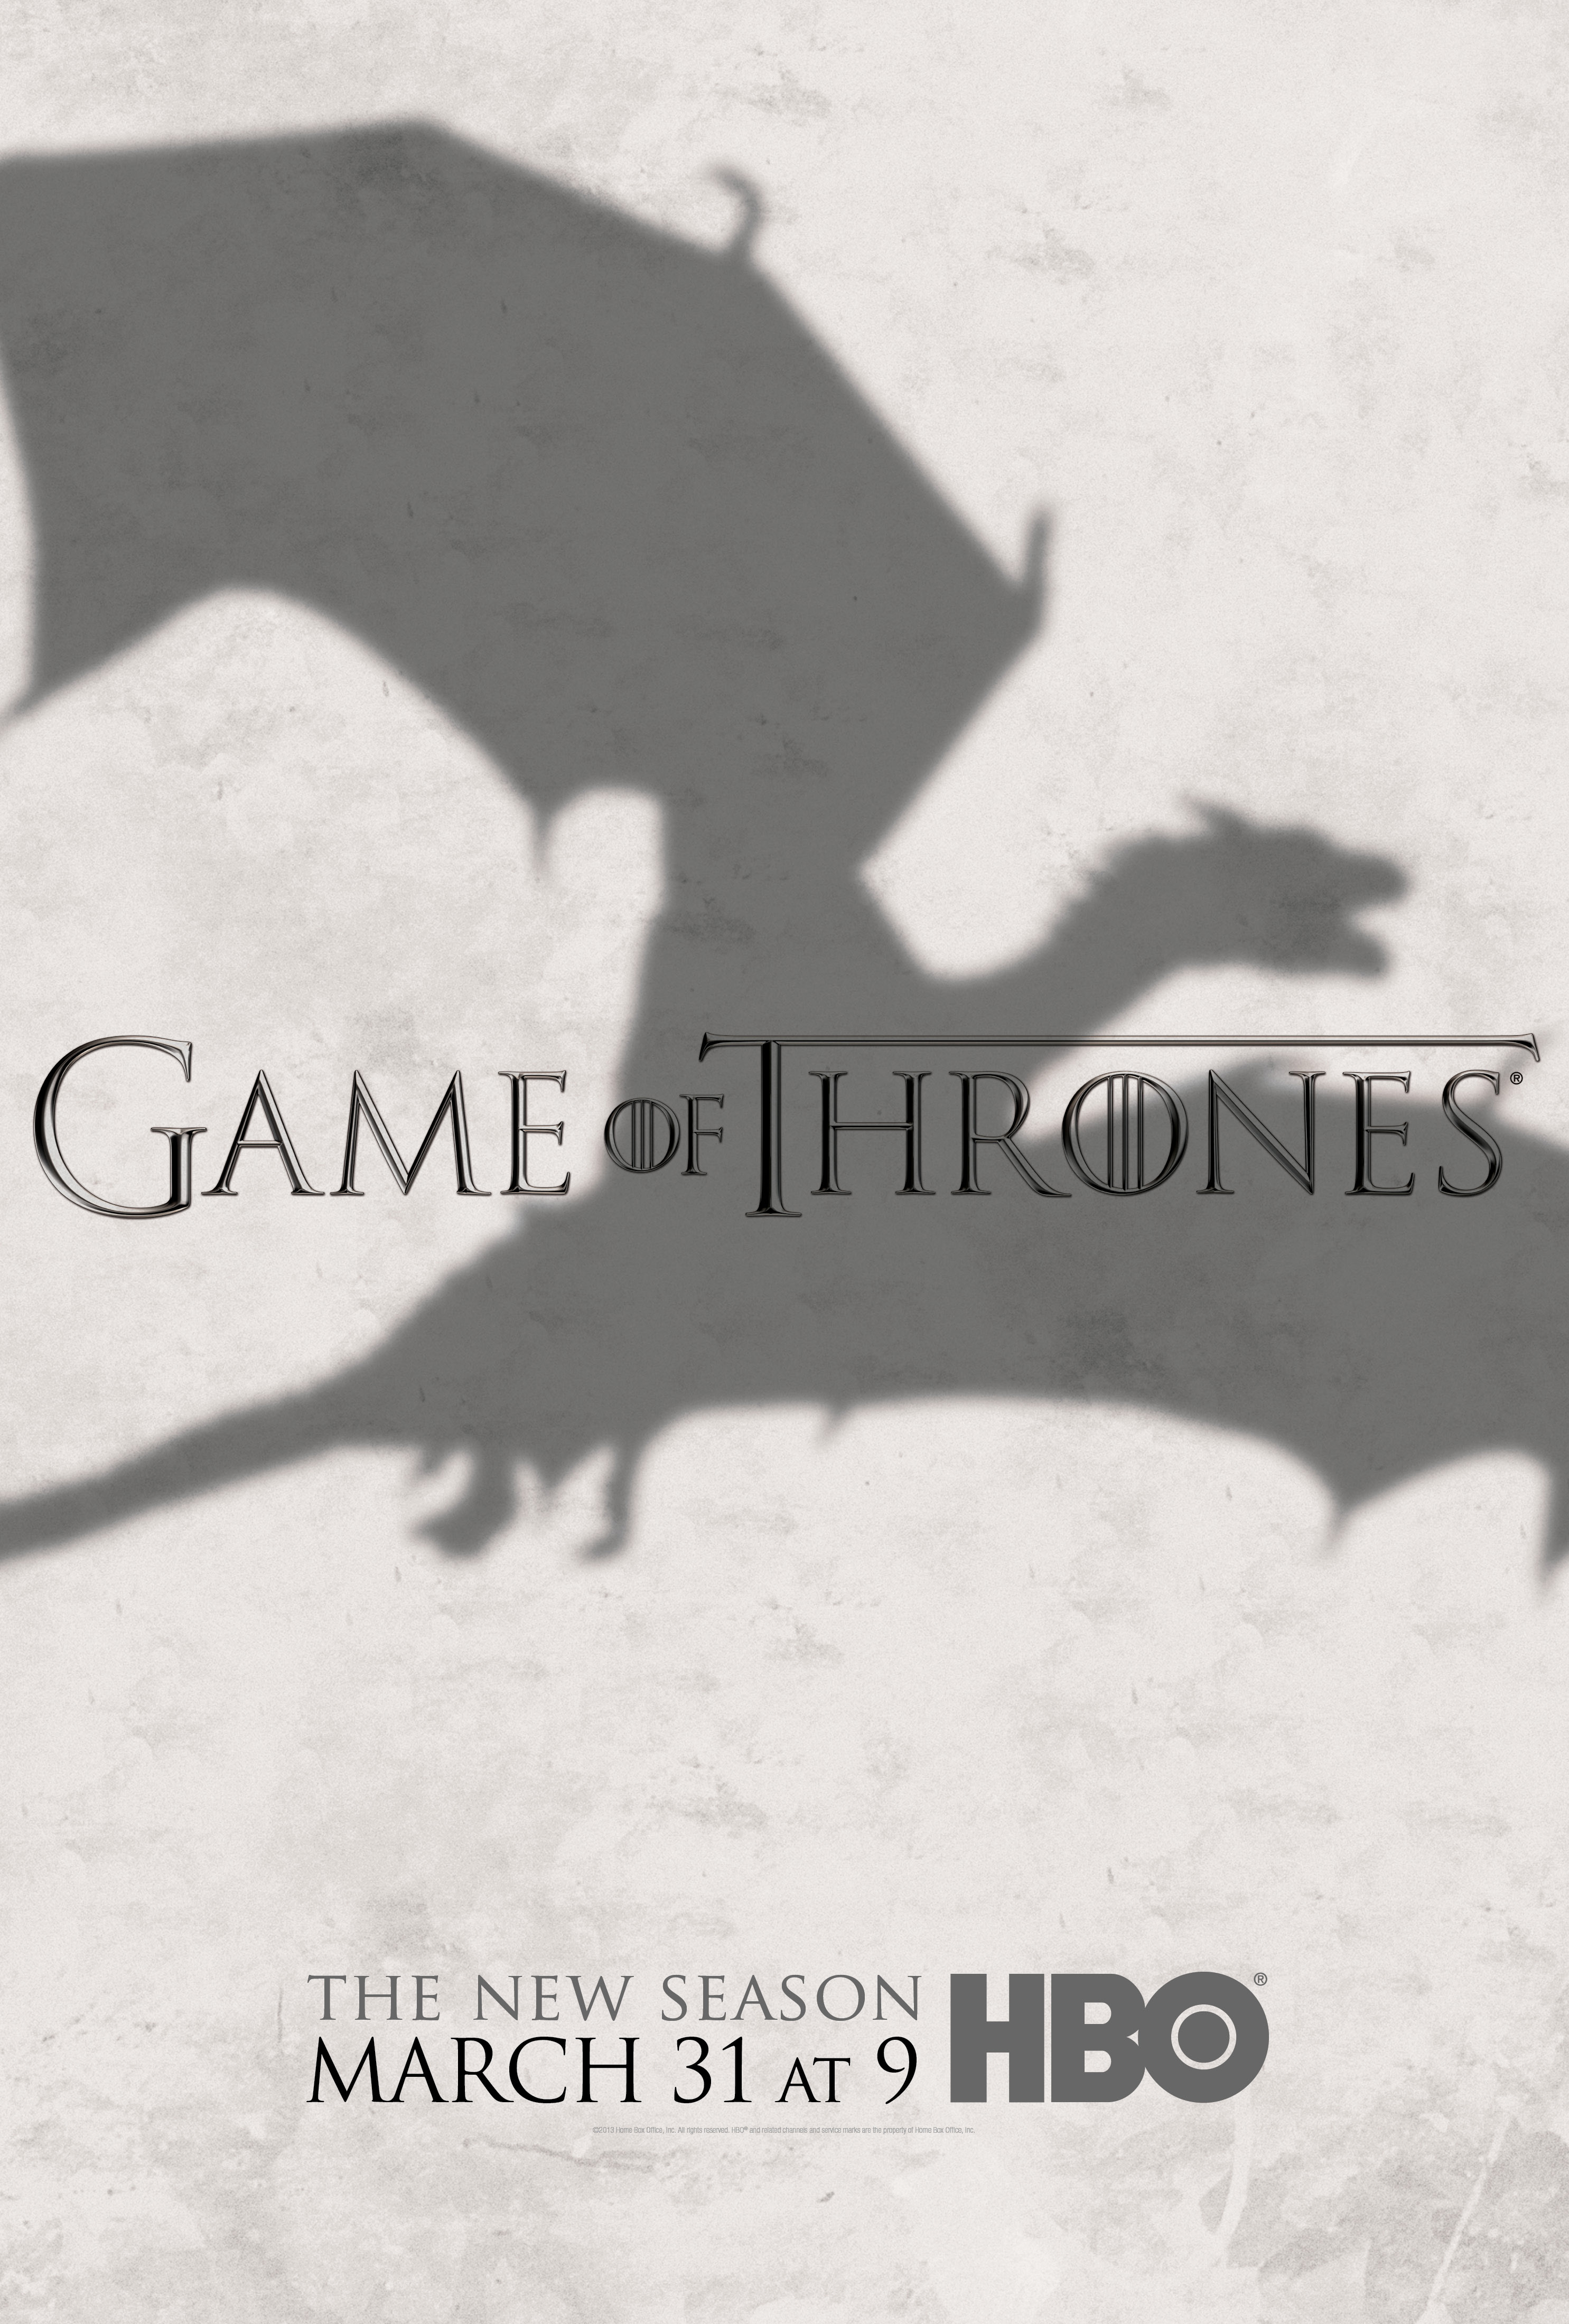 Game of Thrones S3 poster